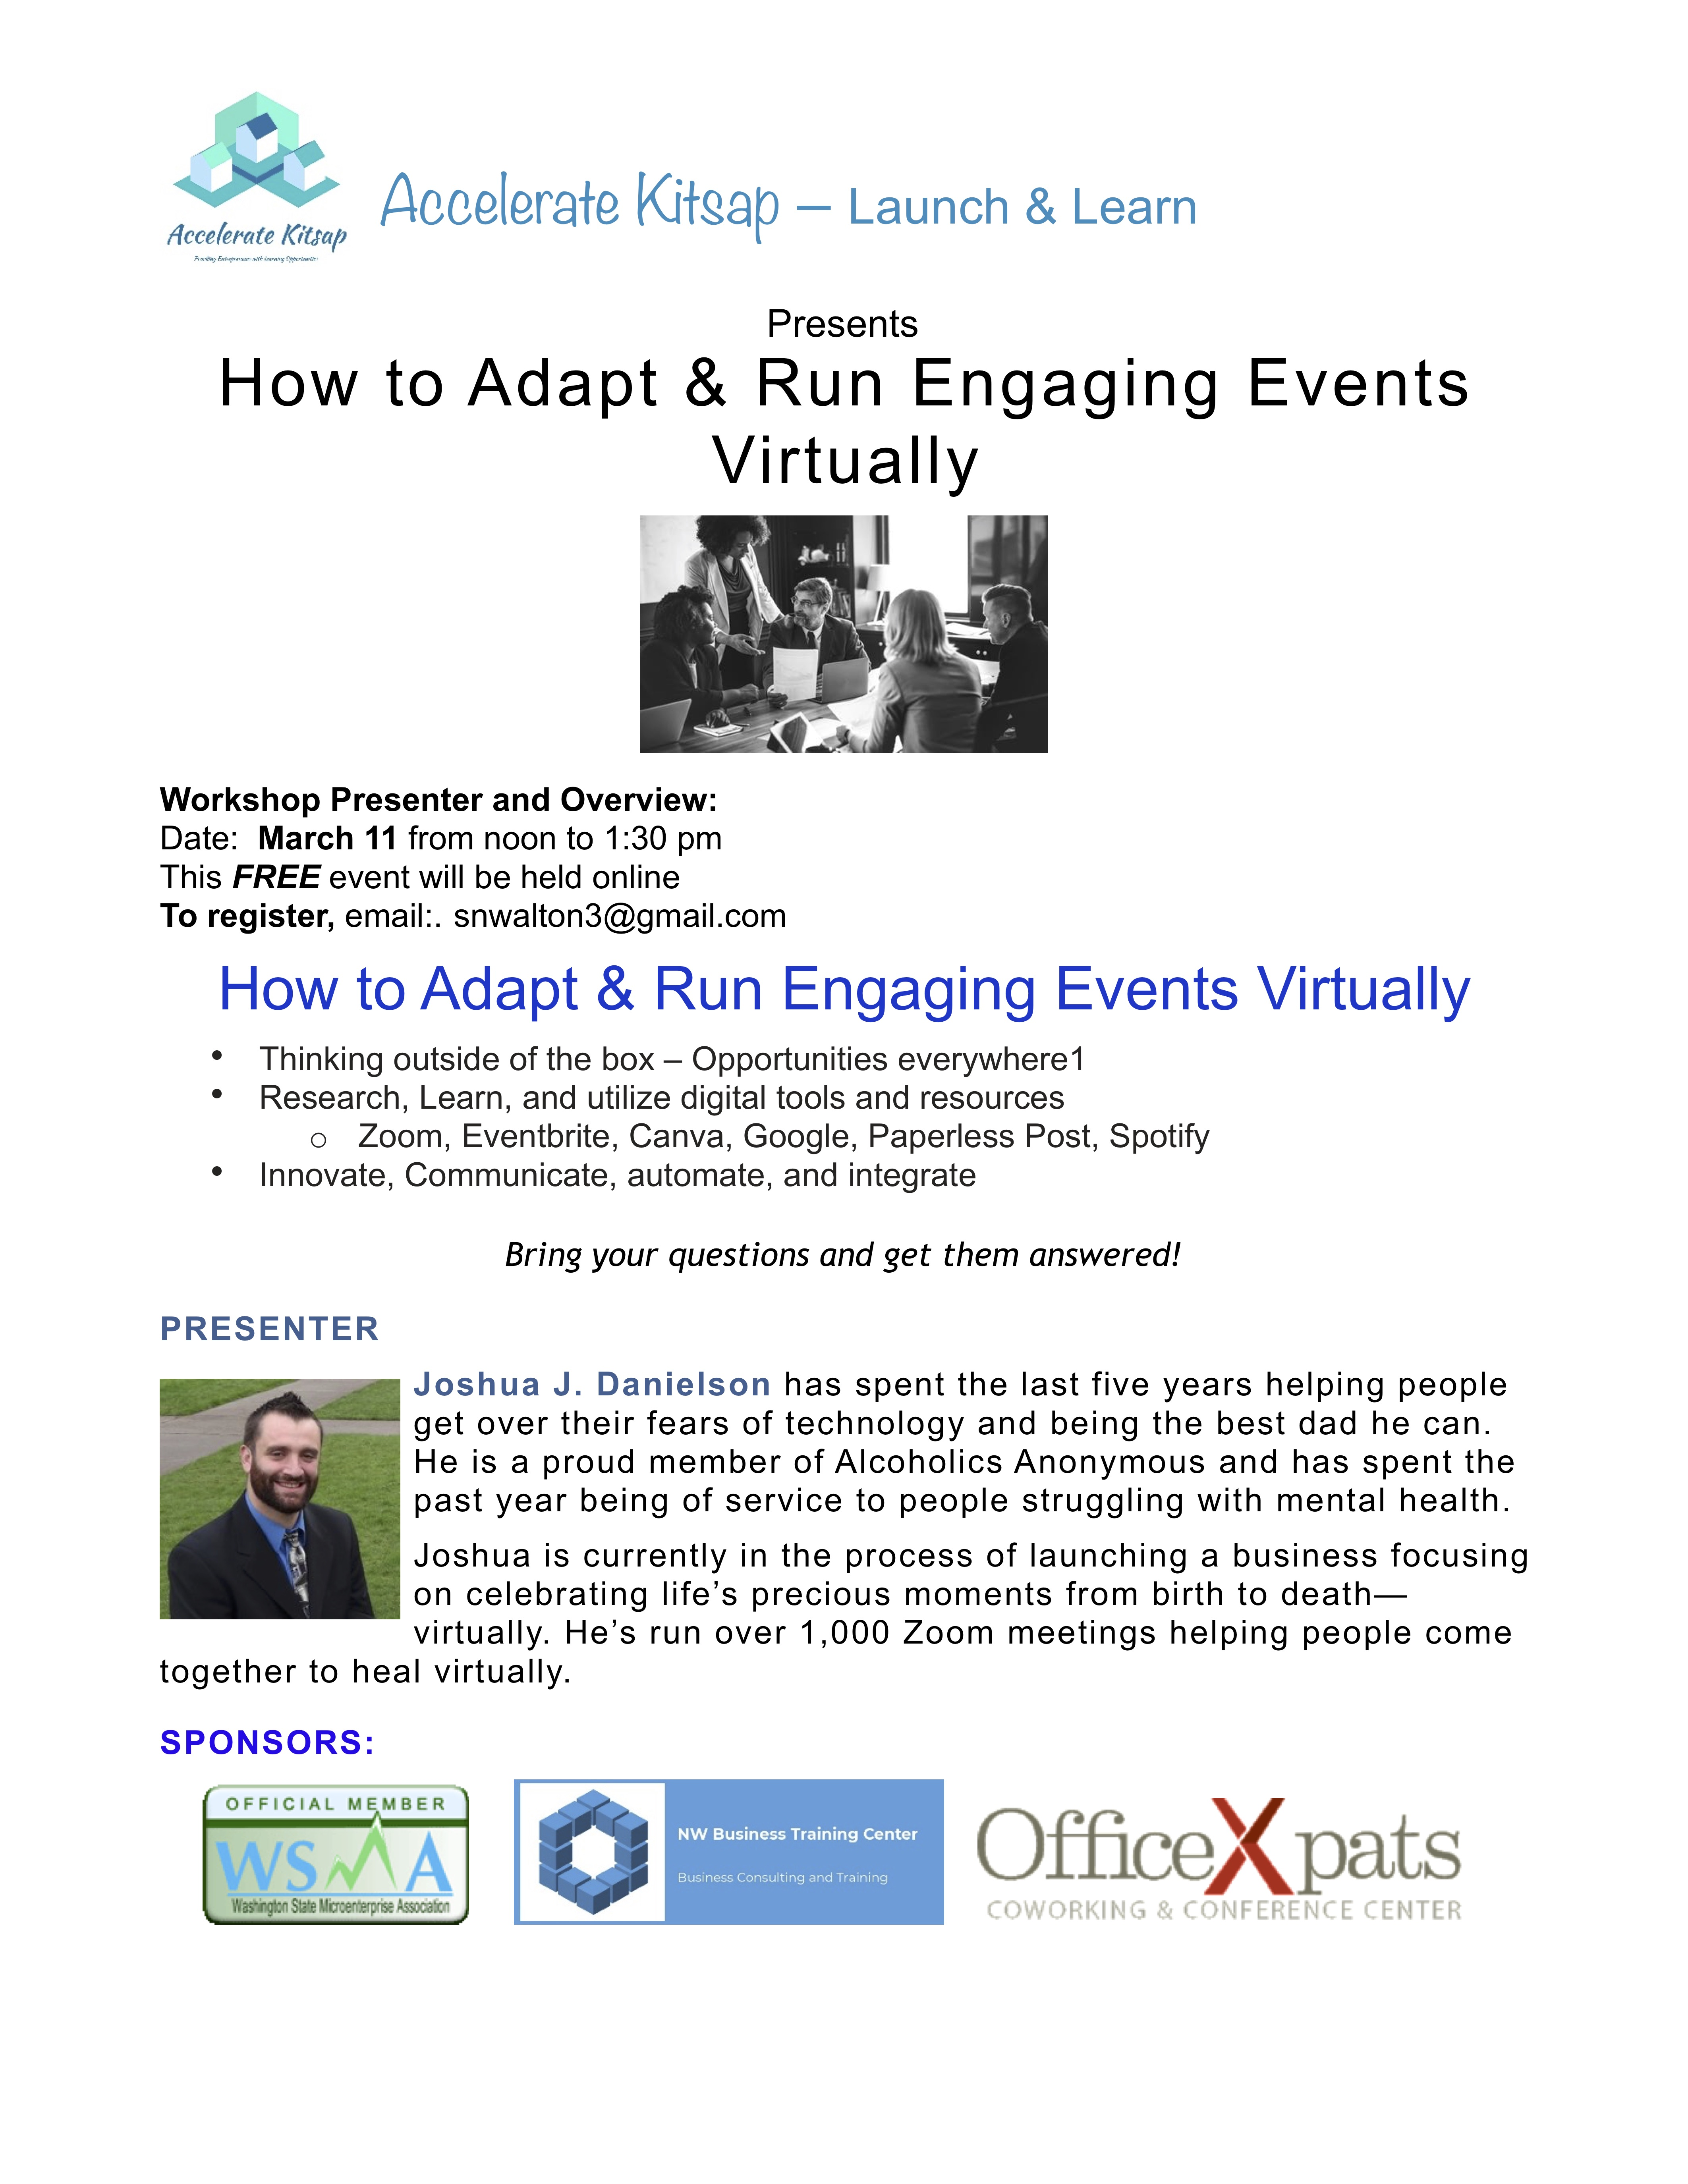 03:33:21 How to Adapt and Run Engaging Events Virtually